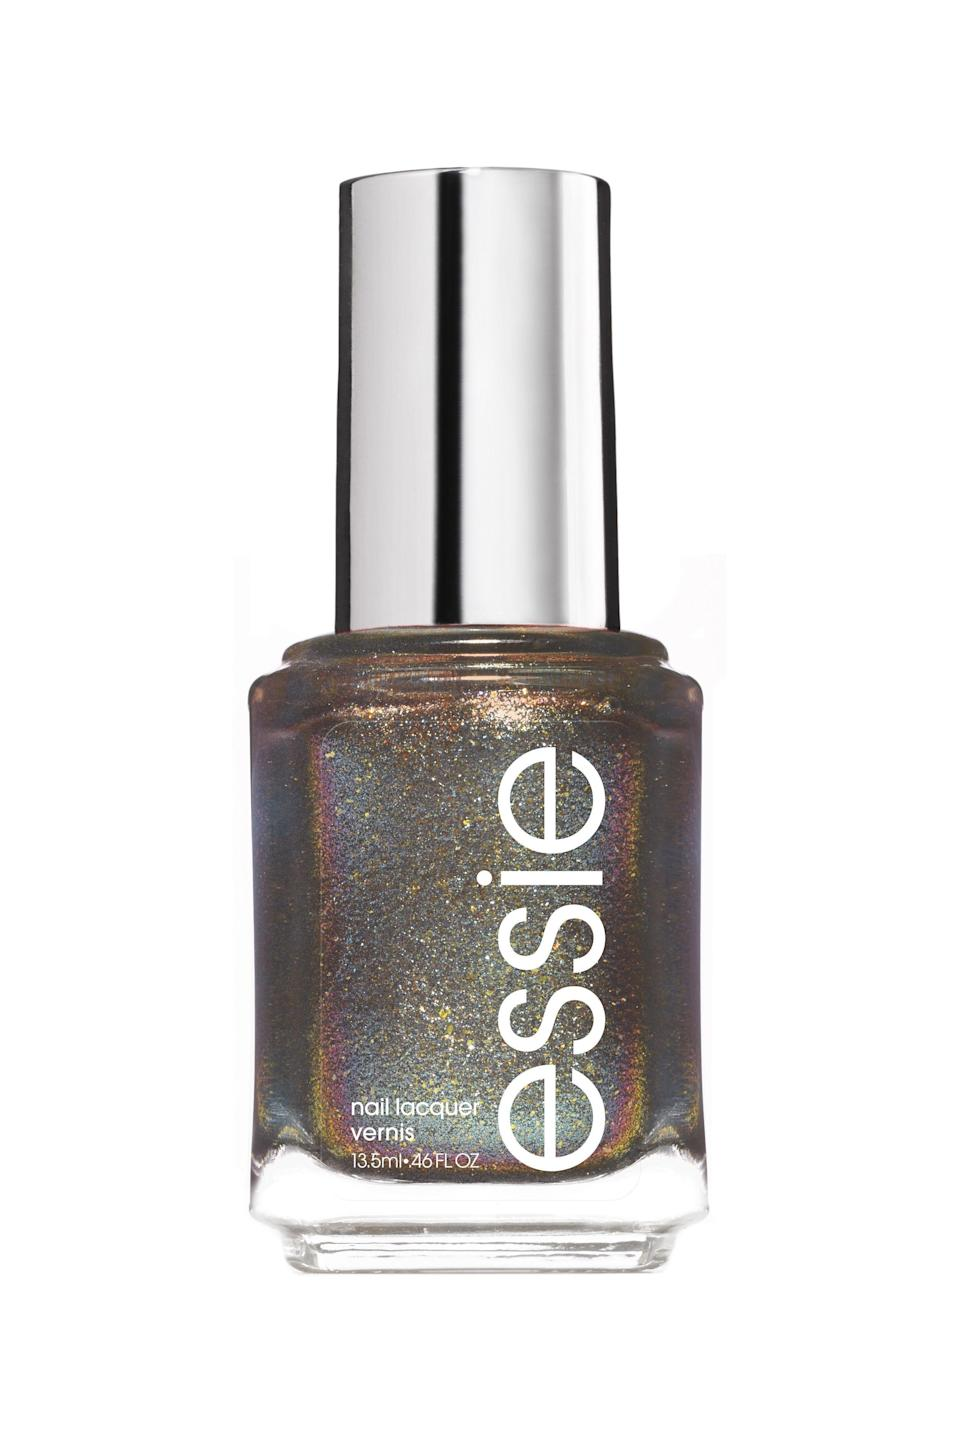 """<p><strong>Essie</strong></p><p>ulta.com</p><p><strong>$100.00</strong></p><p><a href=""""https://go.redirectingat.com?id=74968X1596630&url=https%3A%2F%2Fwww.ulta.com%2Fits-not-youits-mercury%3FproductId%3Dpimprod2010546&sref=https%3A%2F%2Fwww.marieclaire.com%2Fbeauty%2Fnews%2Fg3310%2Fbest-nail-colors-winter%2F"""" rel=""""nofollow noopener"""" target=""""_blank"""" data-ylk=""""slk:SHOP IT"""" class=""""link rapid-noclick-resp"""">SHOP IT</a></p><p>Essie's astrology-themed collection is on to something—mercury may be in retrograde, but that doesn't mean your nails have to face the wrath of weirdness. This dazzling, celestial green hue will dress up your nails in decadence. Pair it with a holiday dress if you want to win best nails at your company party. </p>"""